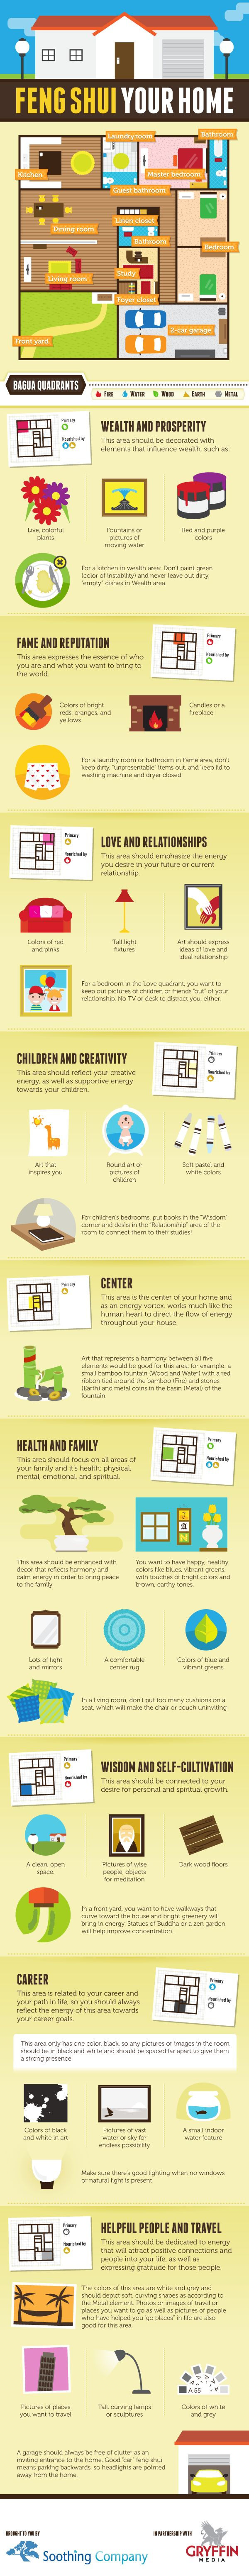 Tips to Feng Shui your home. Find Home Improvement, Remodeling and Renovation Tips on our Blog